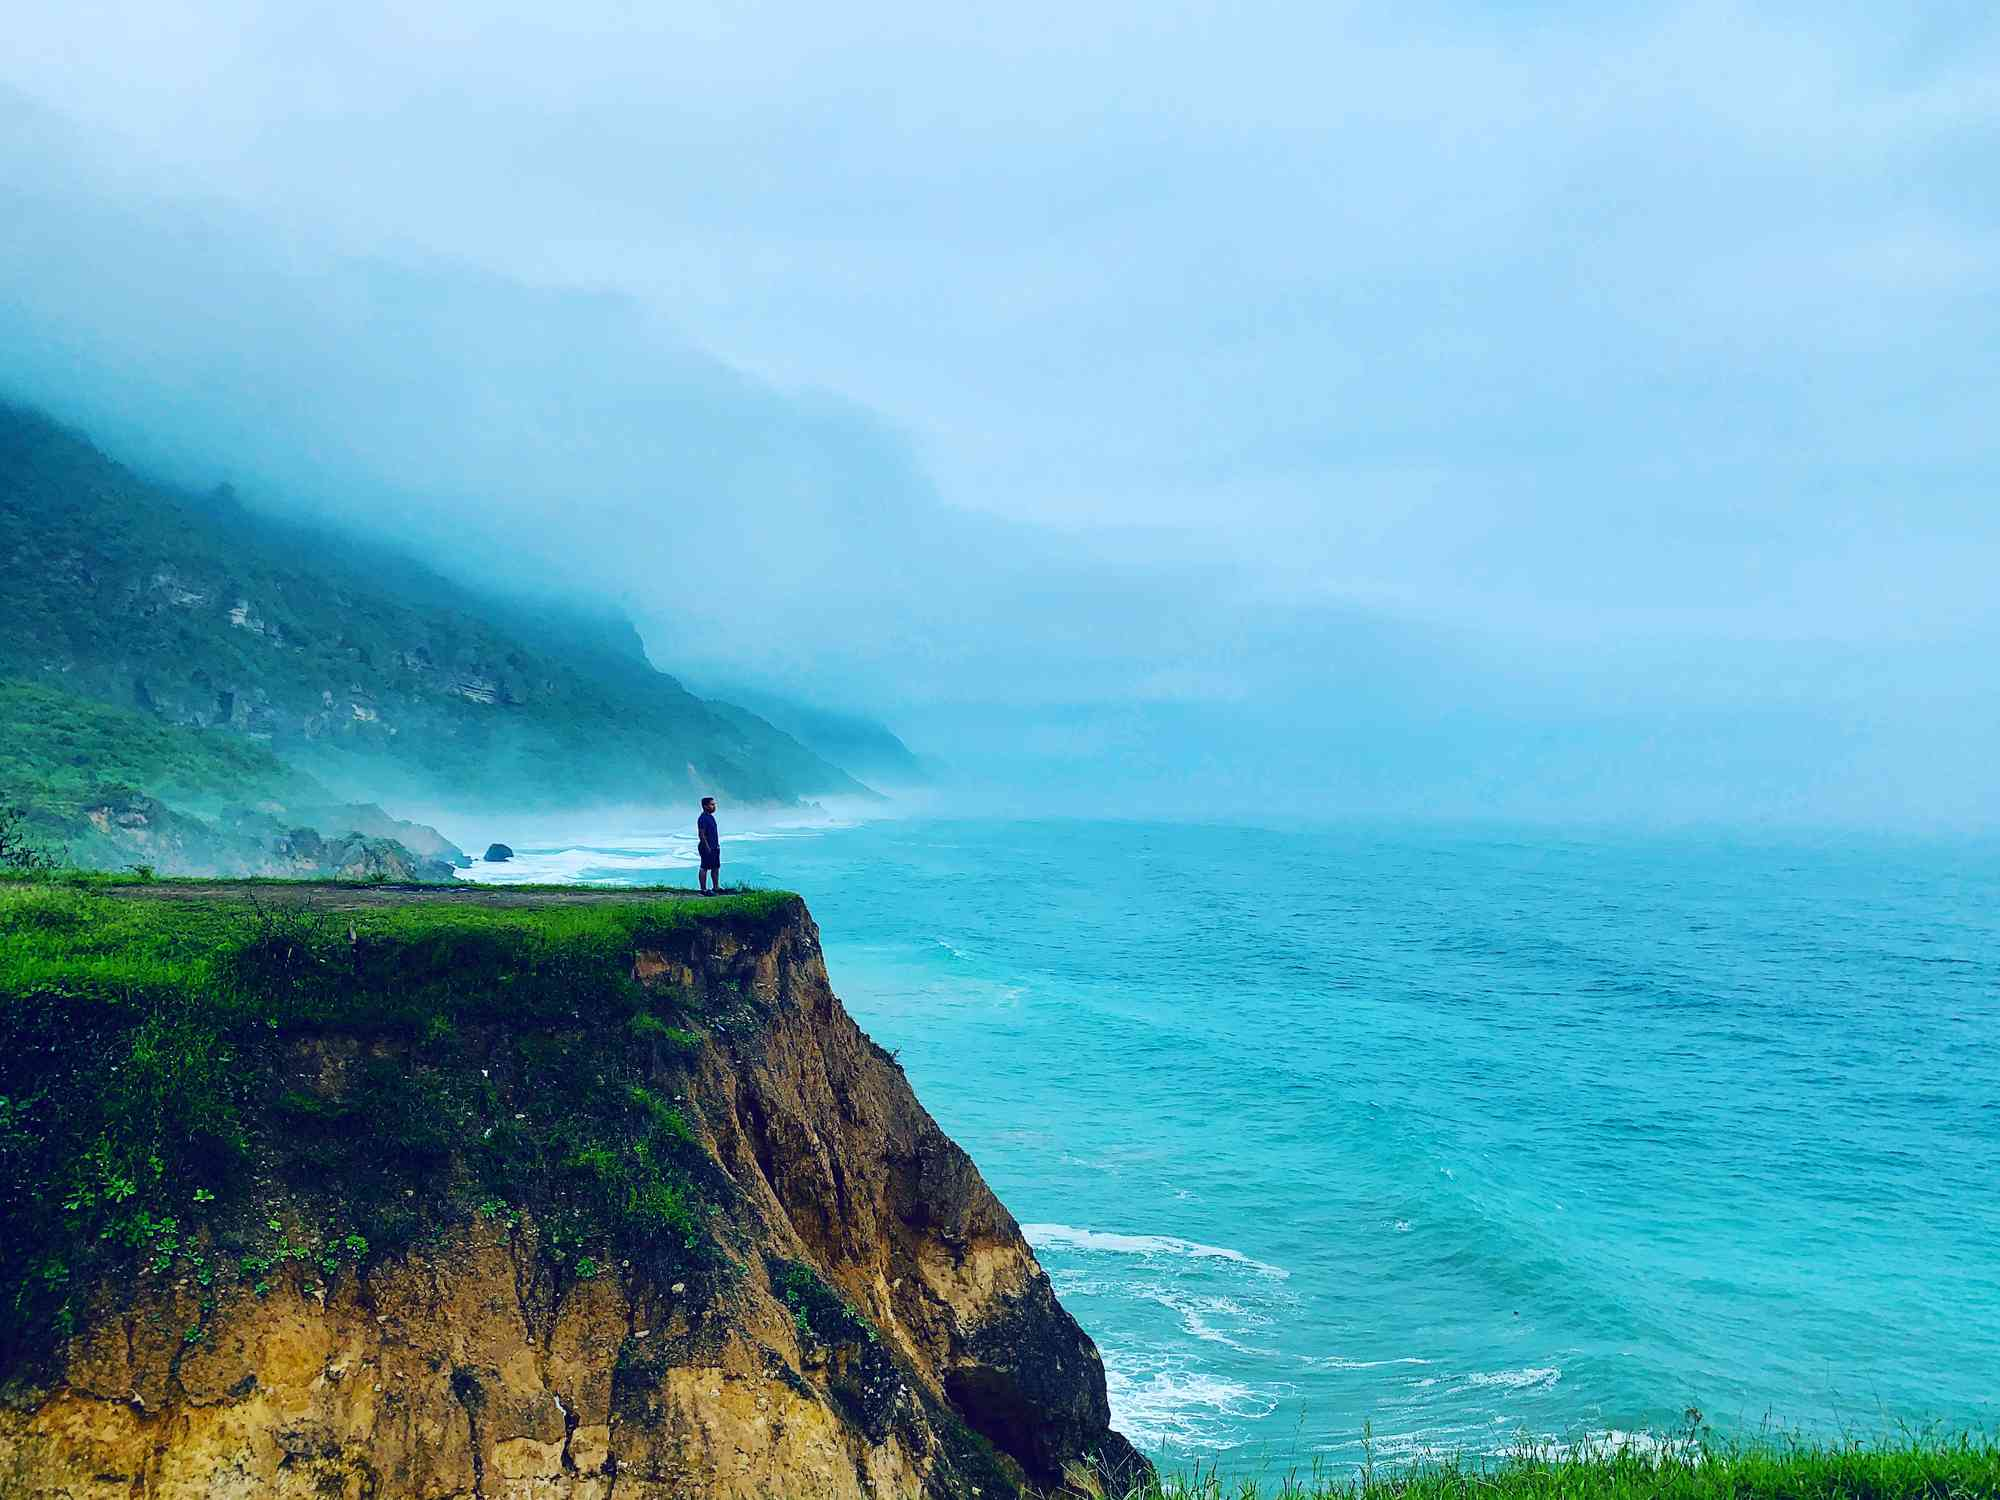 Man standing on a cliff overlooking the sea on a misty day in Salalah, Oman